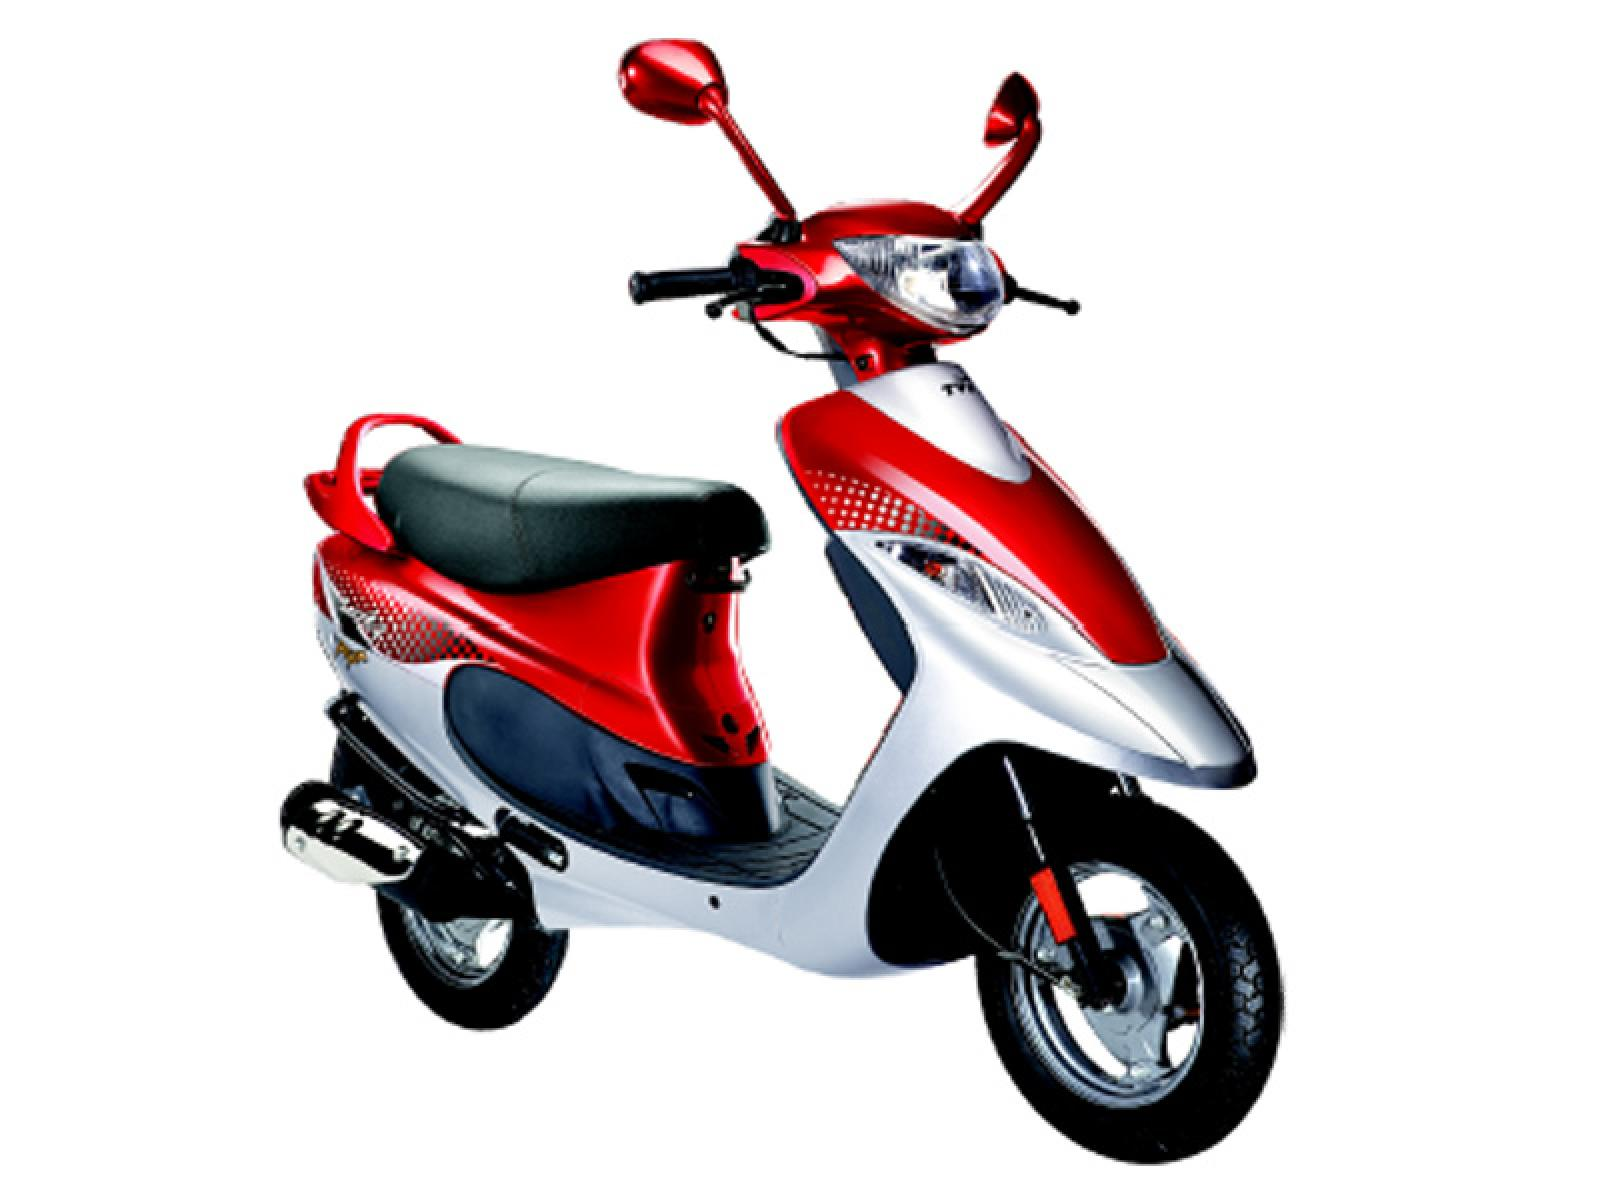 scooter price in nepal pleasure dio activa suzuki tvs autos post. Black Bedroom Furniture Sets. Home Design Ideas